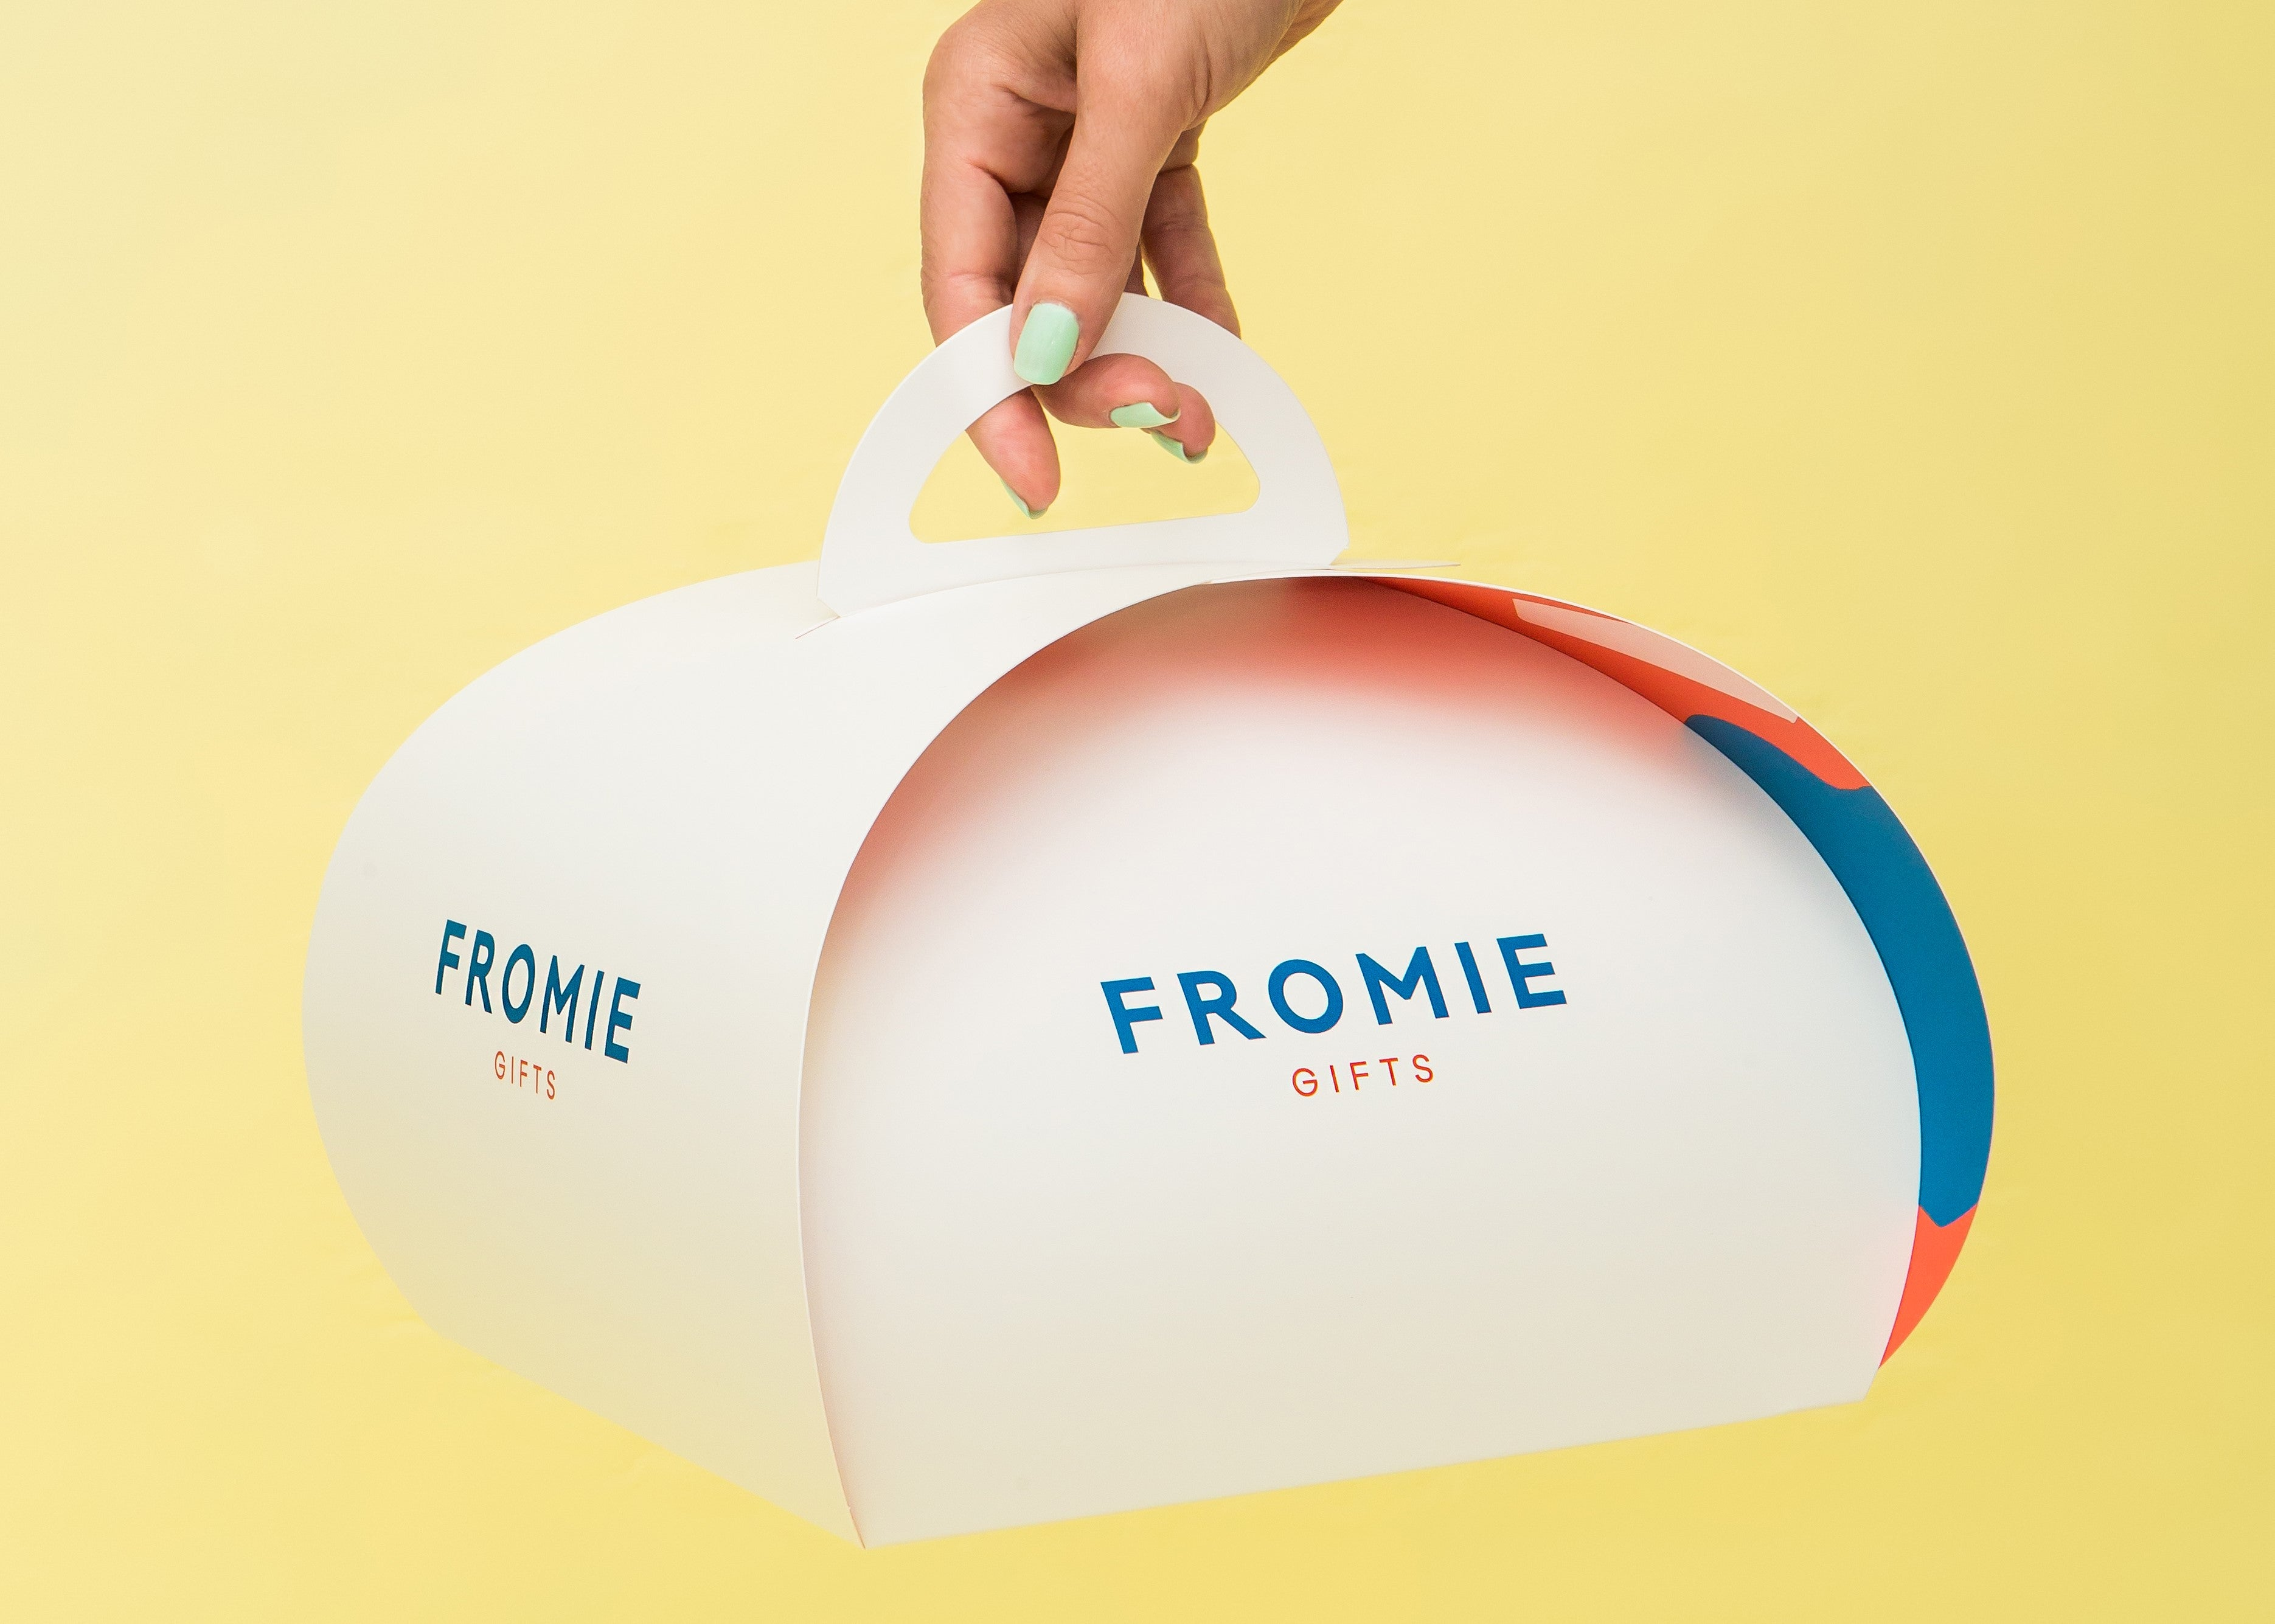 Fromie Gift Box